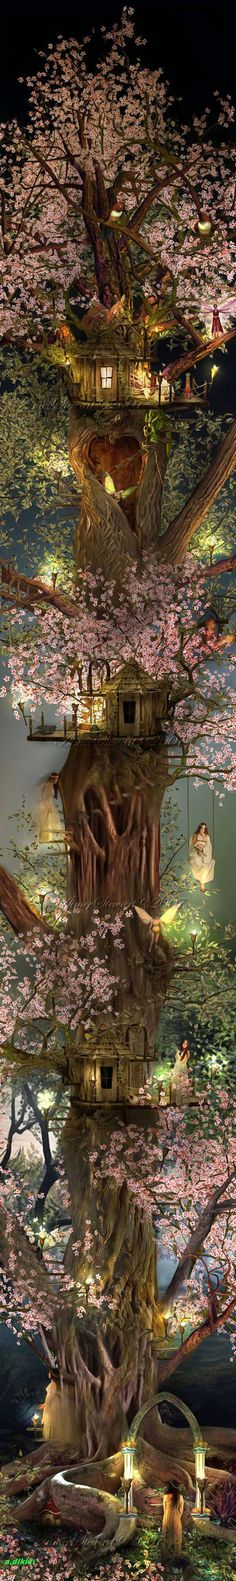 Fairy Dream House from THE ART OF AIMEE STEWART